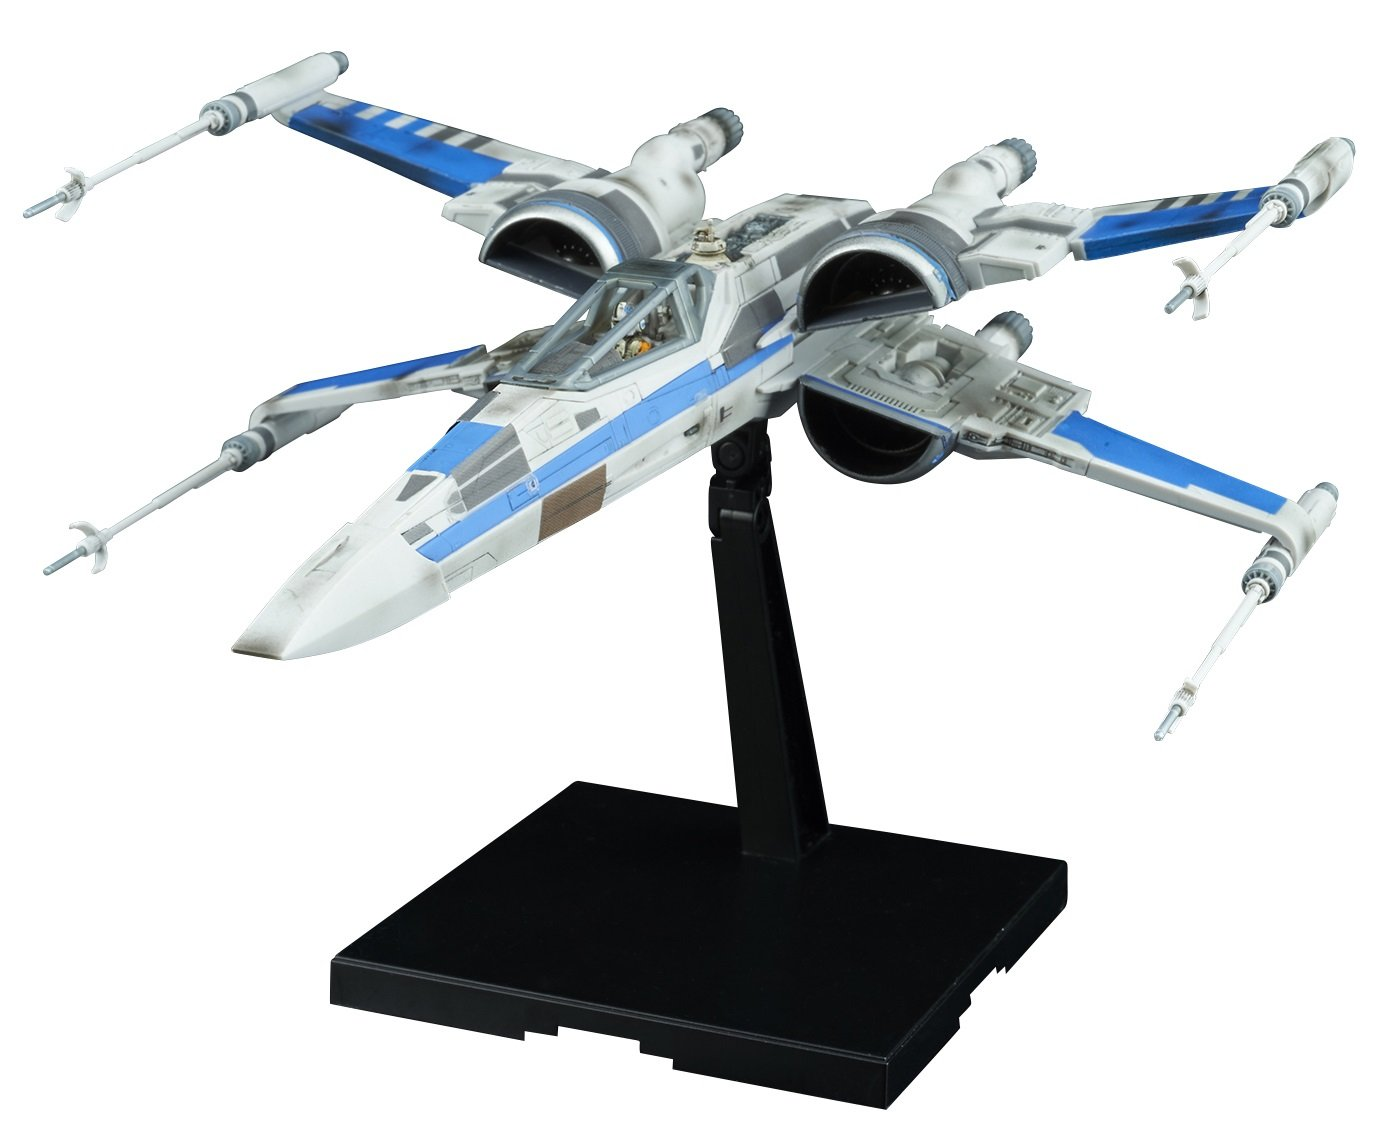 Bandai Hobby 1/72 Blue Squadron Resistance X-Wing Star Wars: The Last Jedi